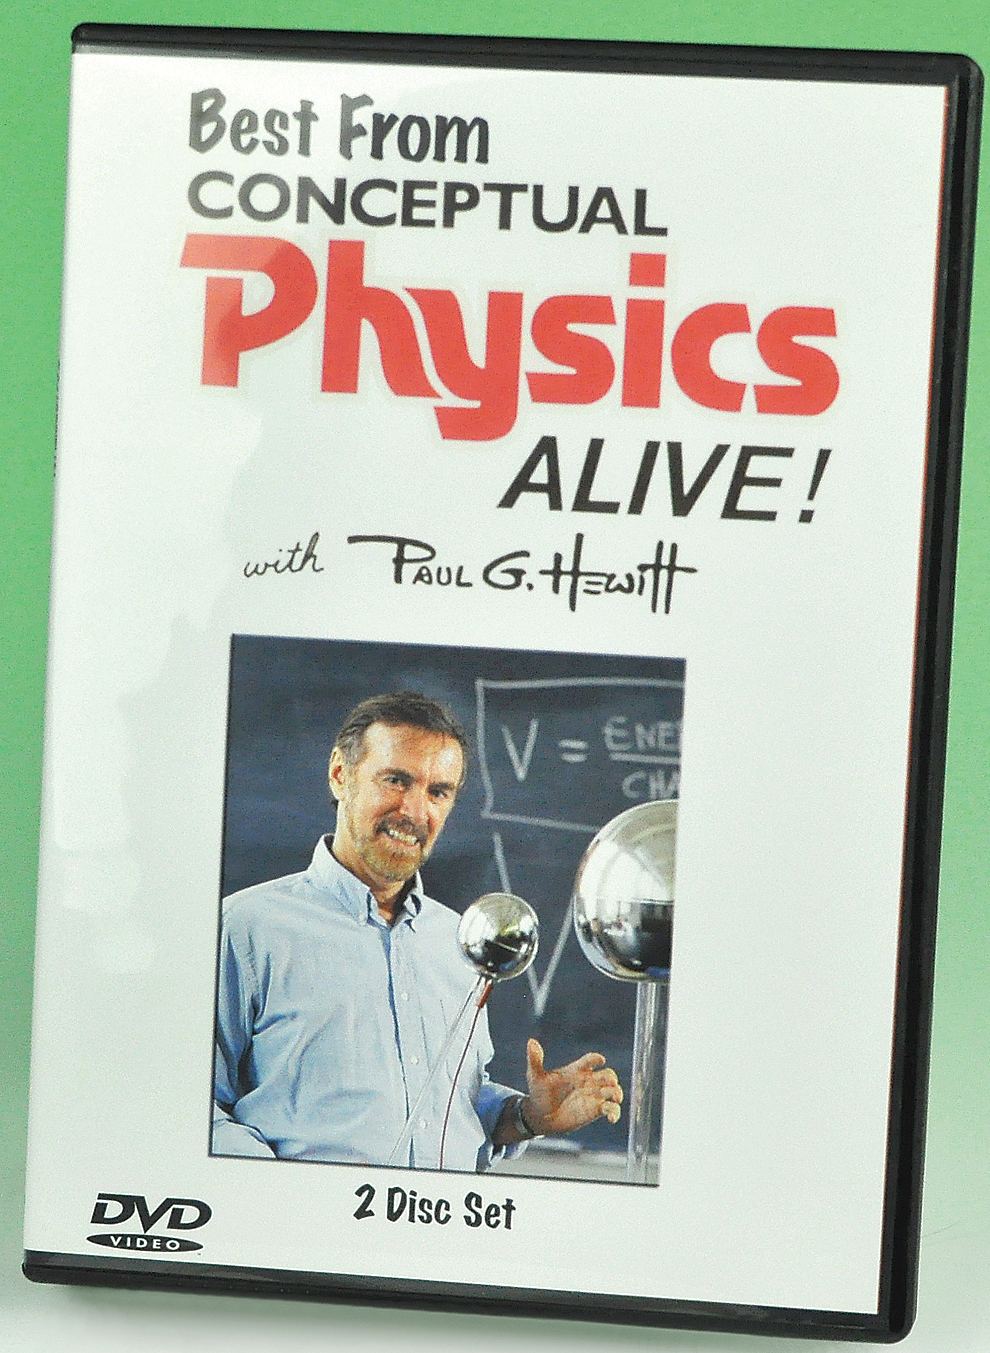 Best from Conceptual Physics Alive, DVD Set